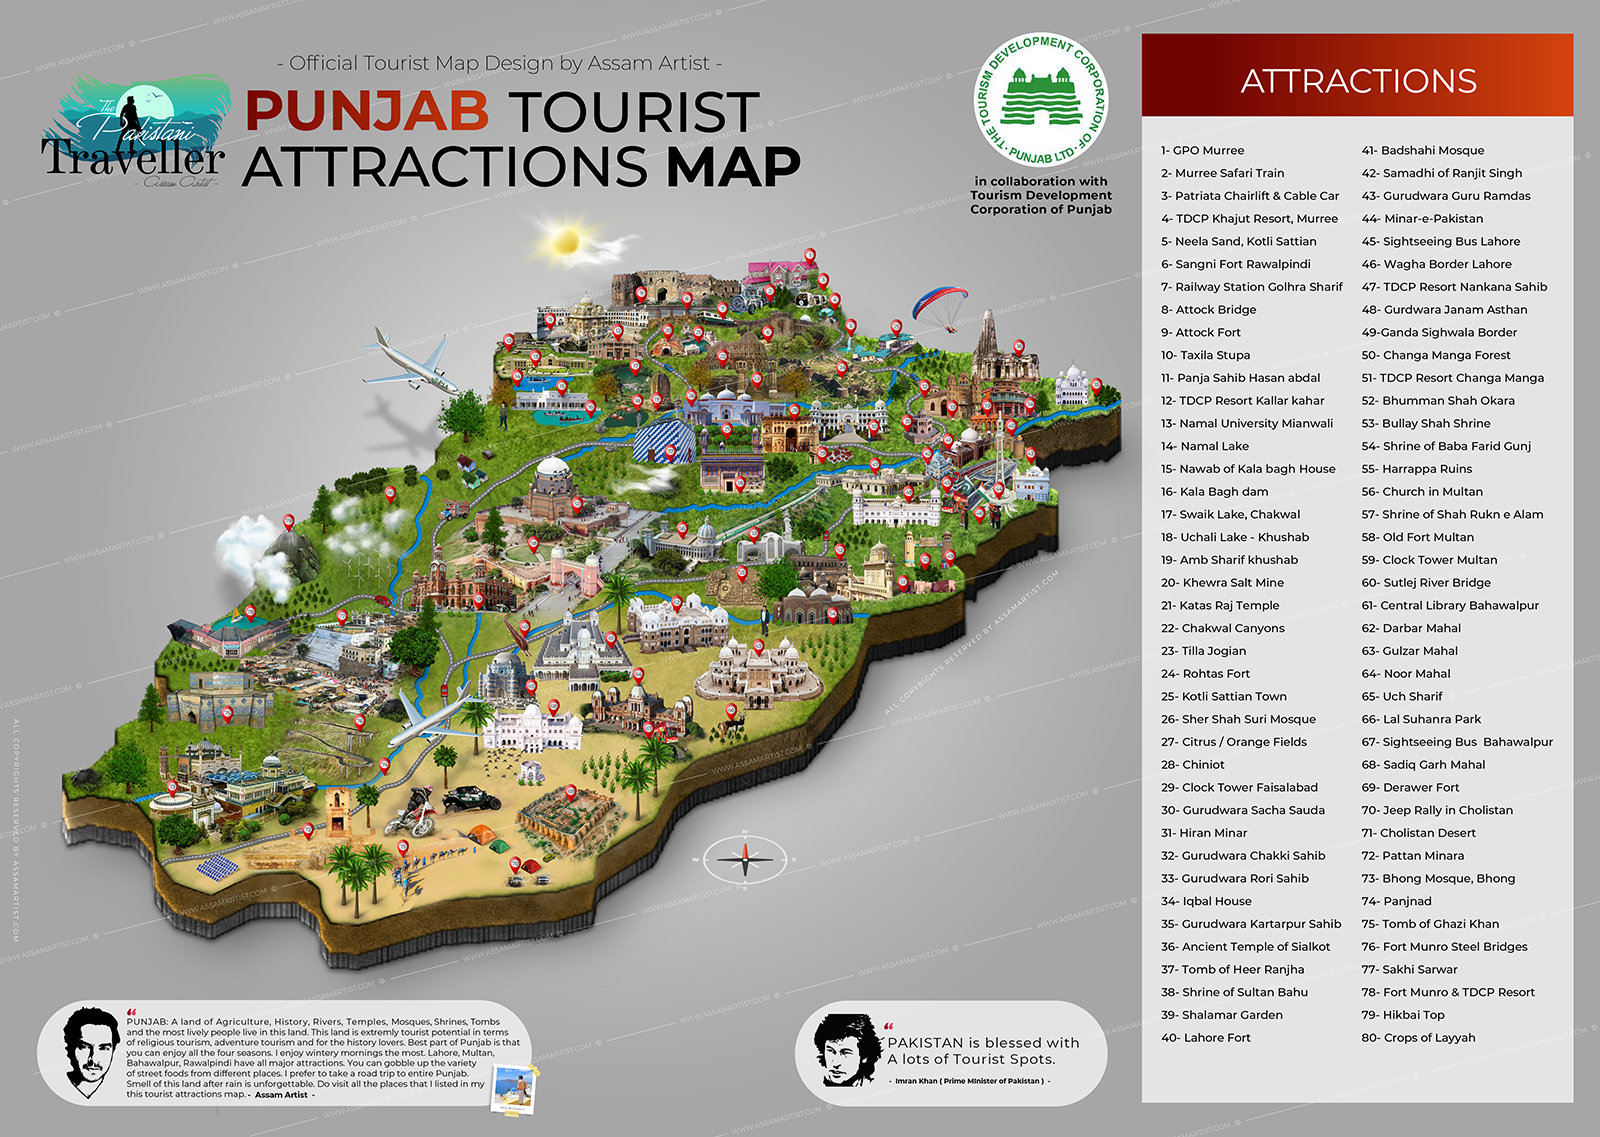 Punjab Tourist Attractions Map